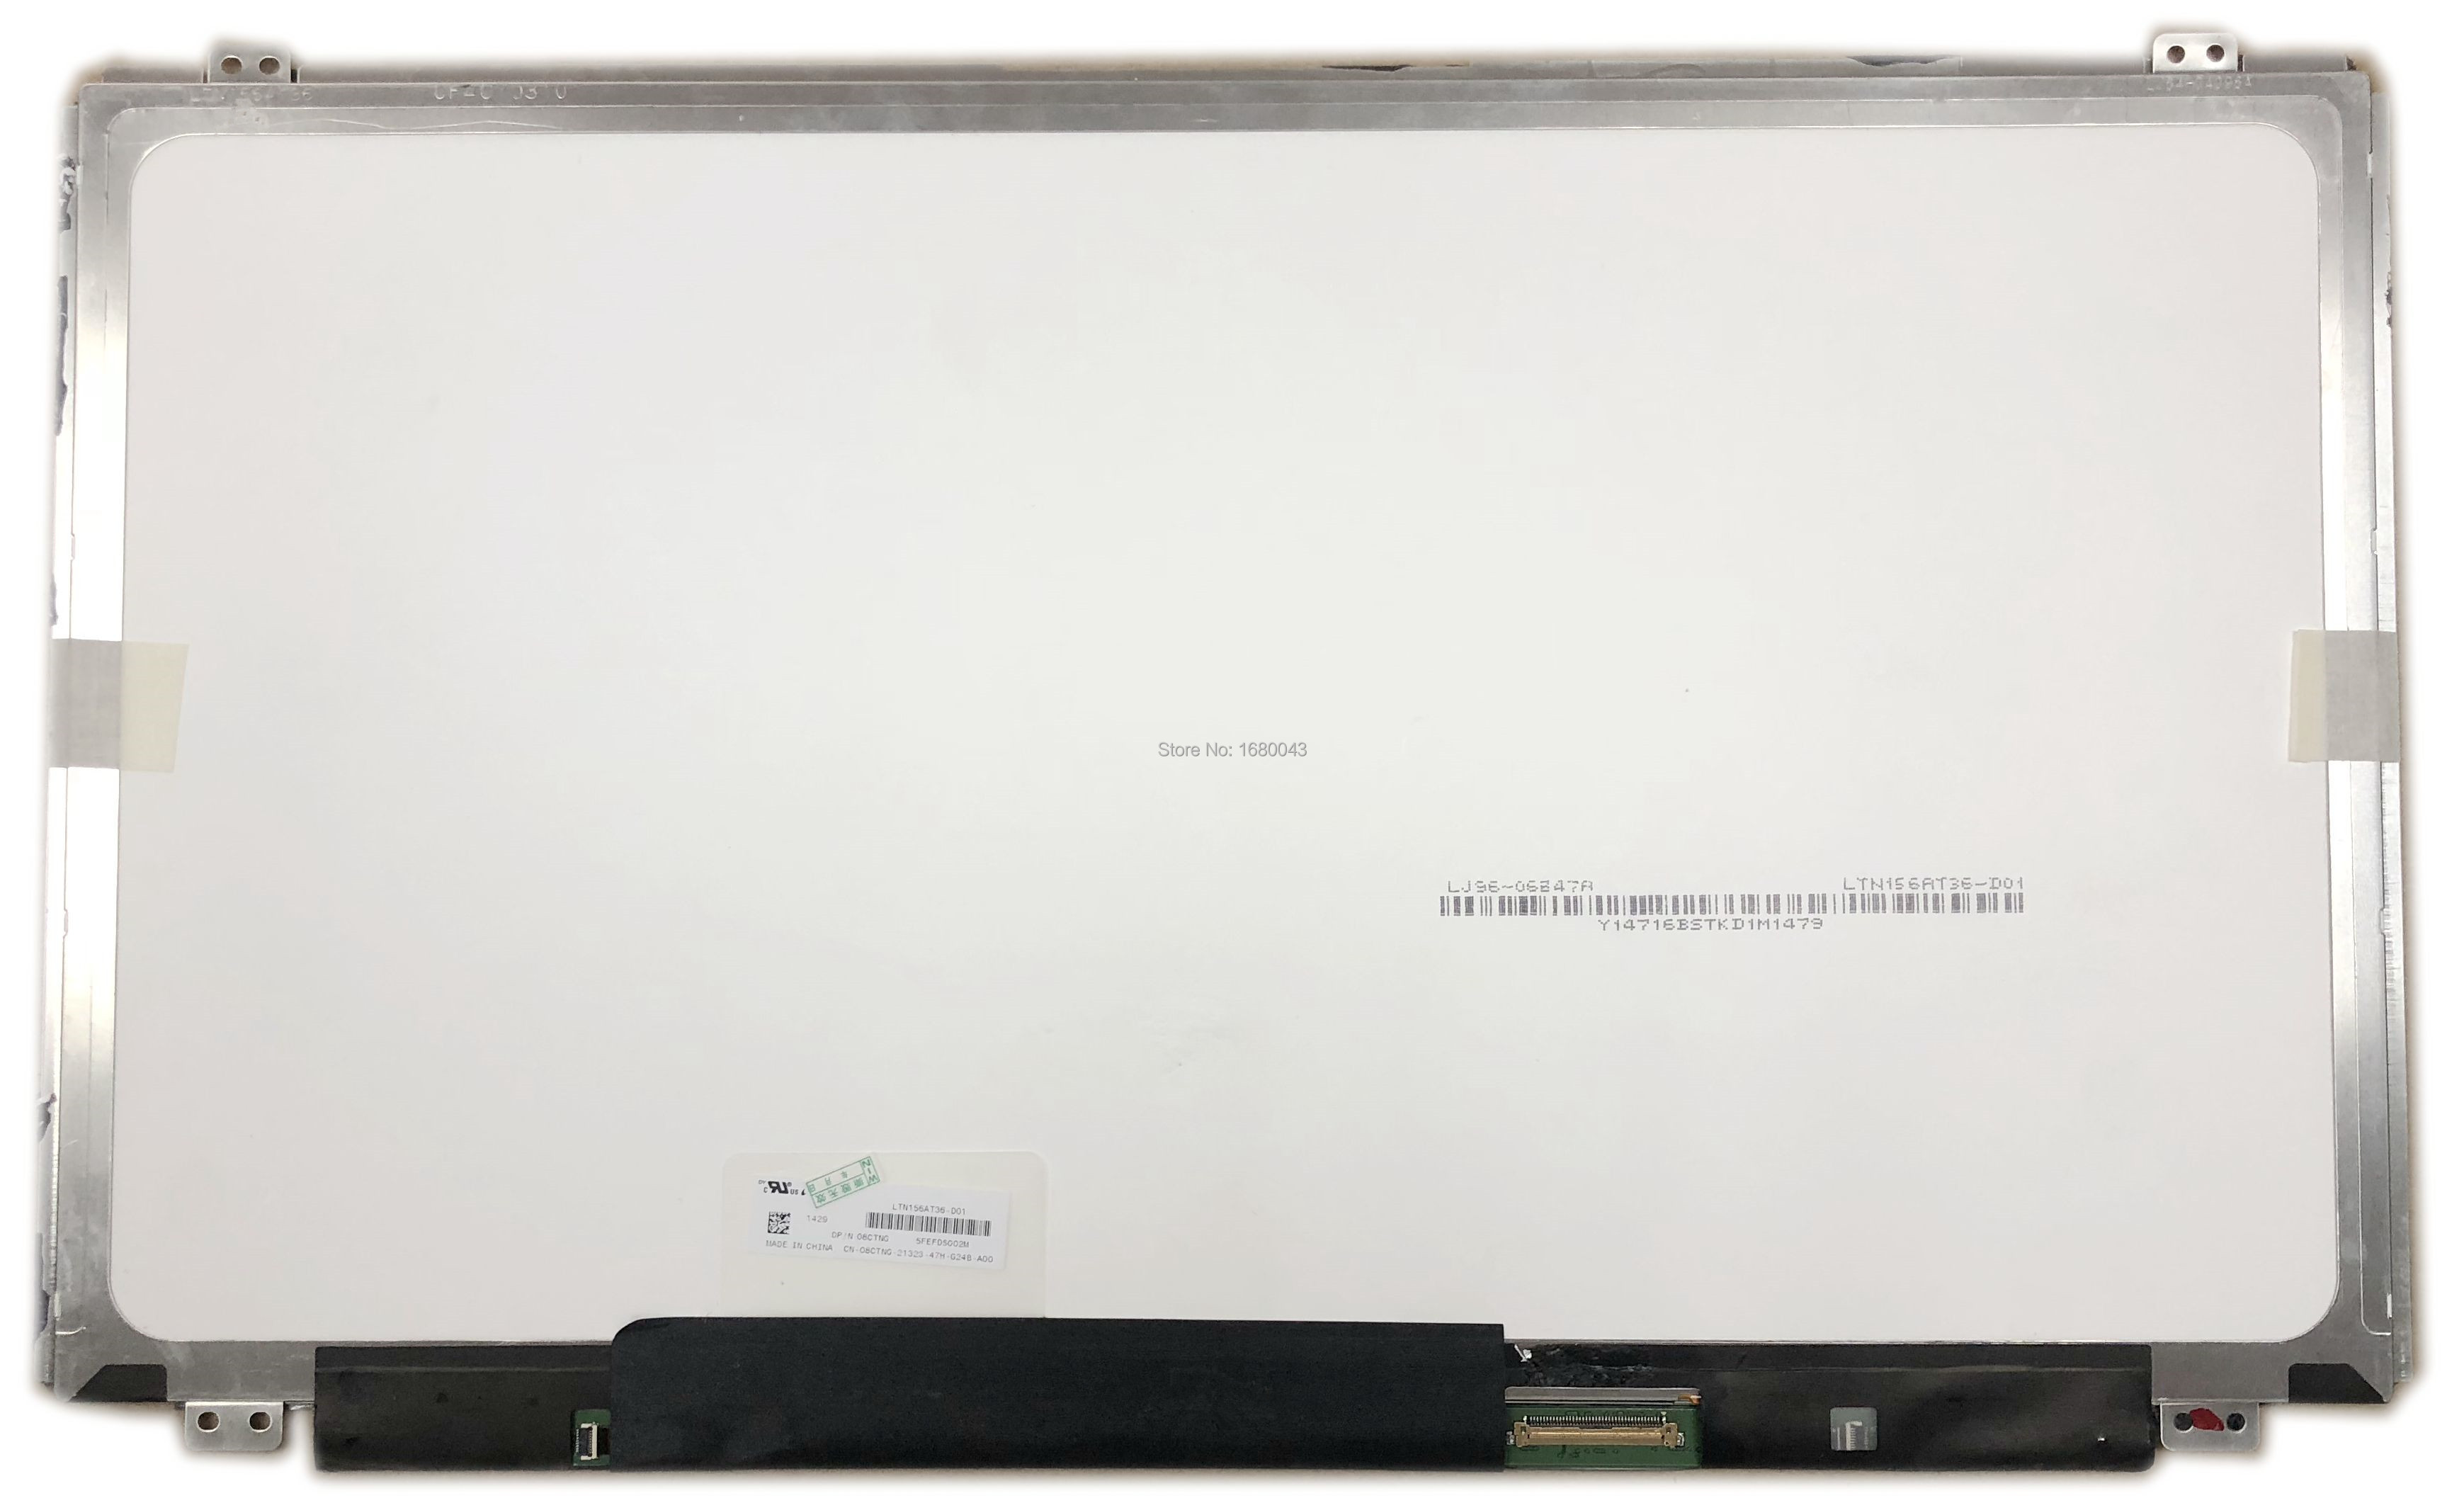 LTN156AT36 D01 fit LTN156AT36-D01 With TOUCH SCREEN Digitizer LED Display Laptop Screen 40 pins for DELLLTN156AT36 D01 fit LTN156AT36-D01 With TOUCH SCREEN Digitizer LED Display Laptop Screen 40 pins for DELL